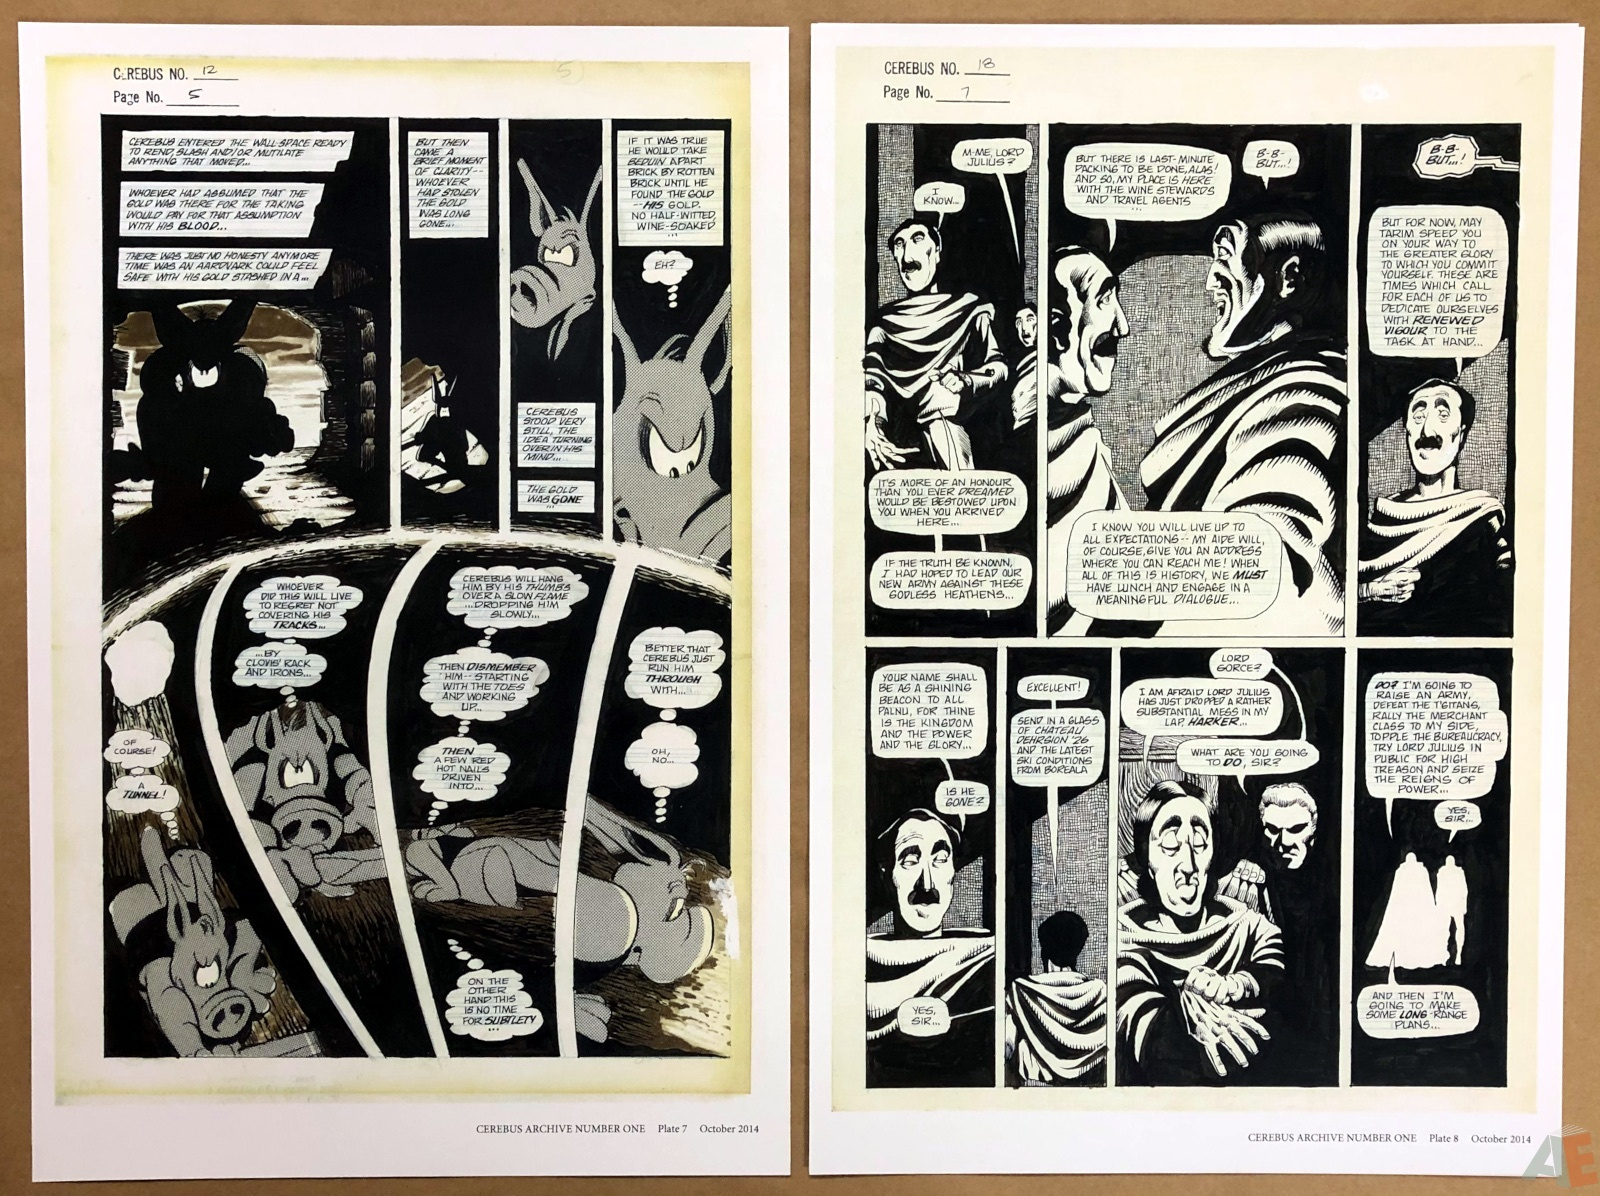 Cerebus Archive Number One 12